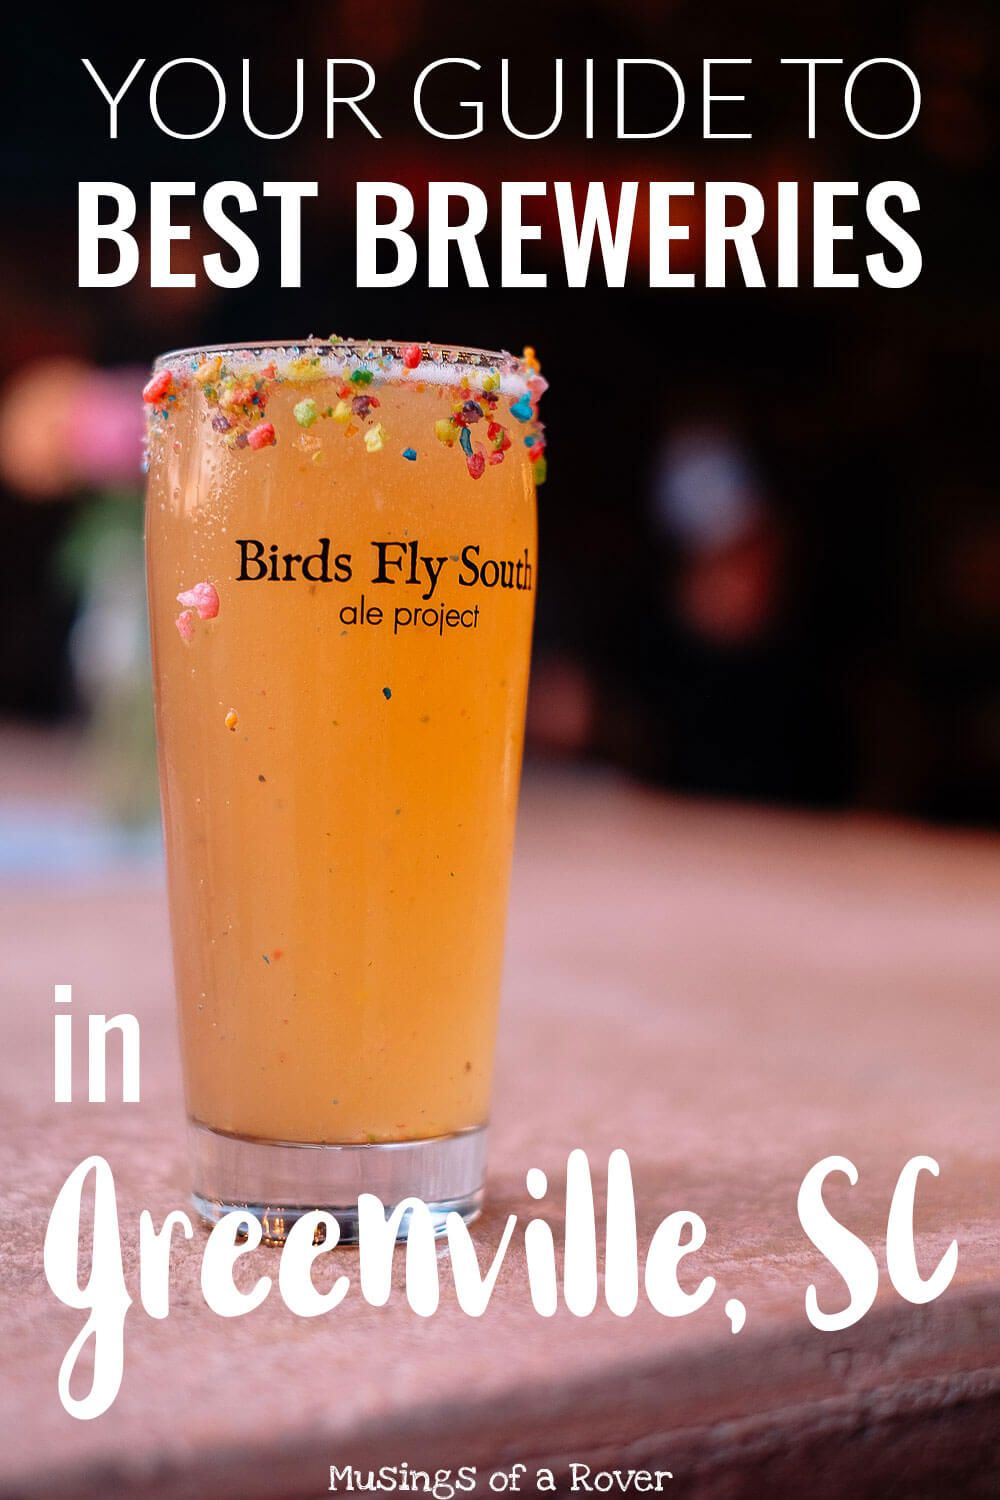 Looking for the best breweries in Greenville, SC? Then this guide has you covered! It includes all of the local favorites including Birds Fly South, Fireforge Crafted Beer, and Liability Brewing. Brewery hopping is one of the best things to do in Greenville, SC and you'll now be able to plan your trip with ease. Find the brewery and their beer that matches what you like to drink so you won't be disappointed. And if you want to bring your dog along, this guide will let you know if the taproom is dog friendly.